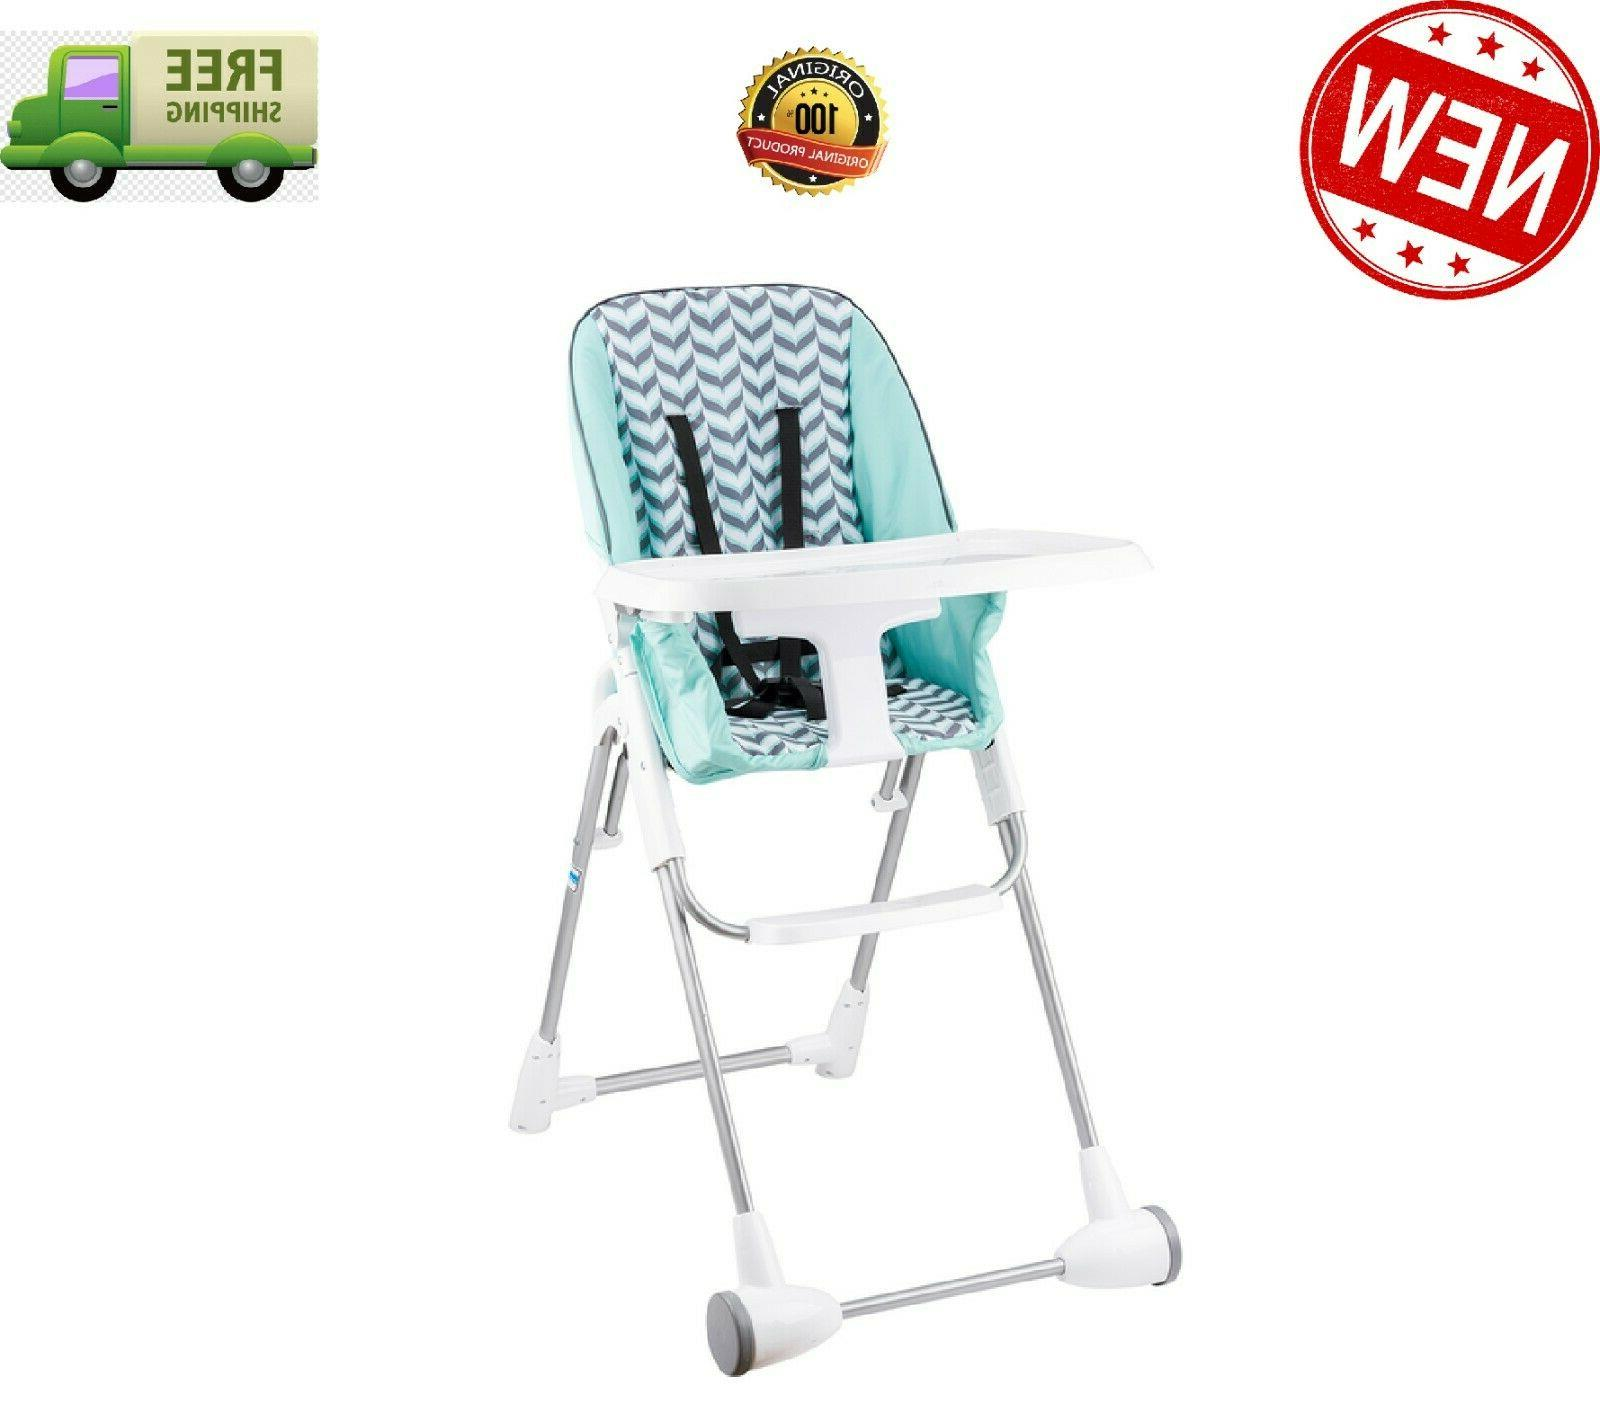 symmetry baby high chair new